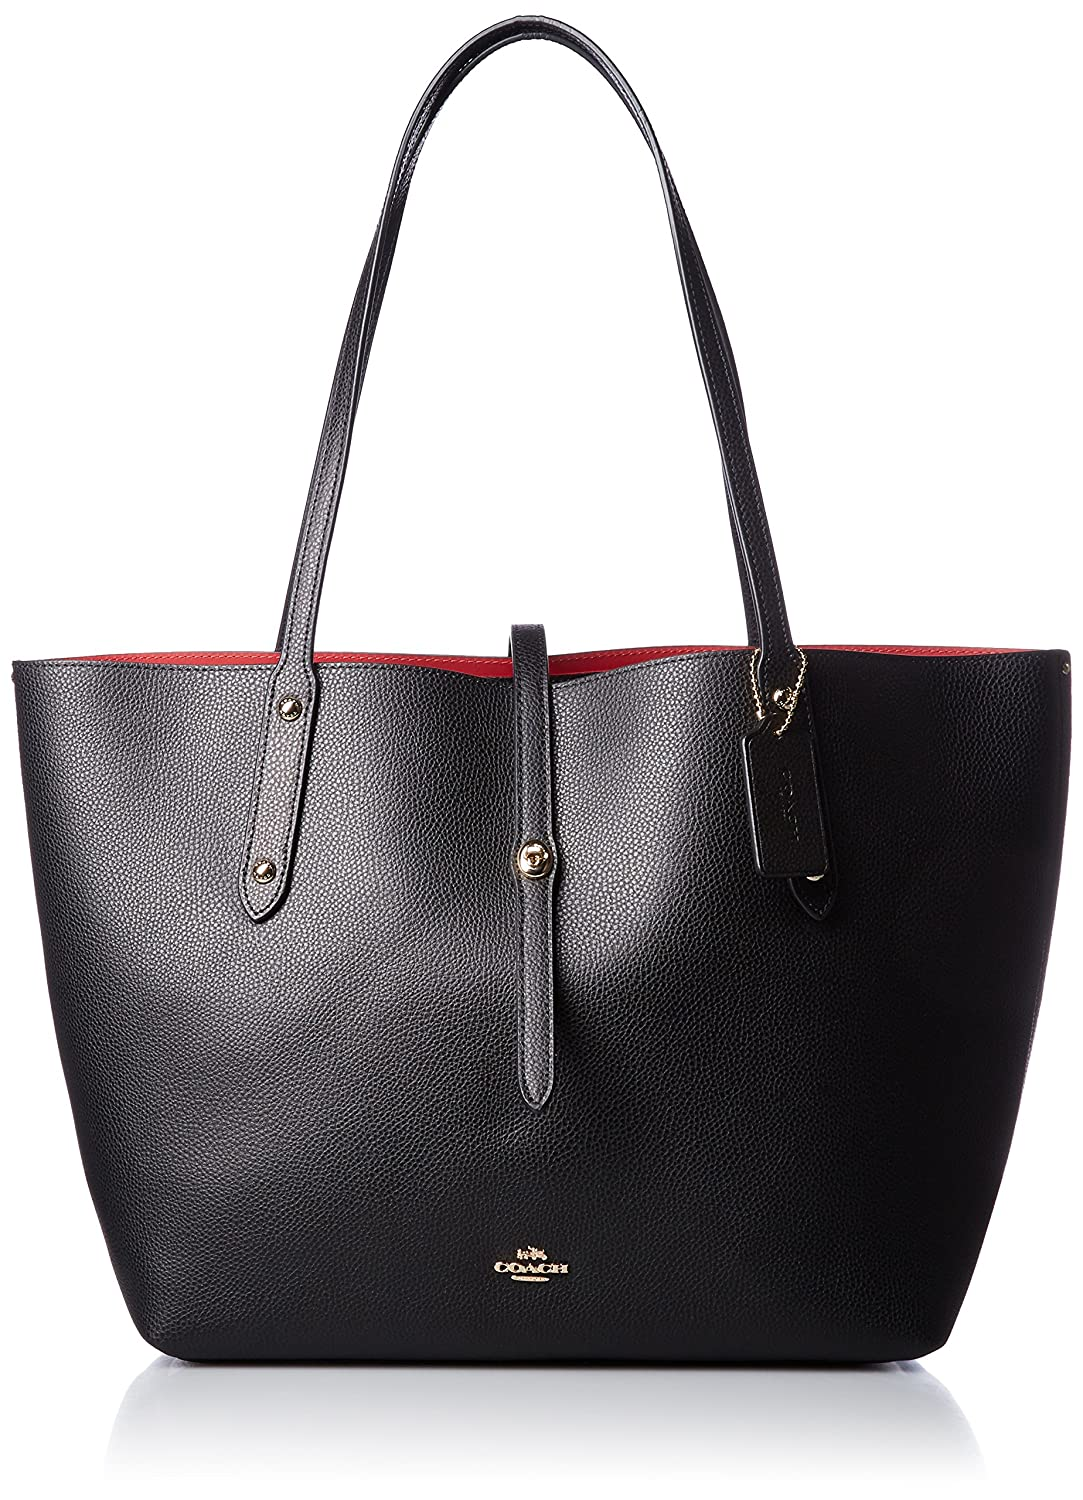 d294afd108 Amazon.com  COACH Women s Polished Pebbled Leather Market Tote  Li Black True Red One Size  Shoes